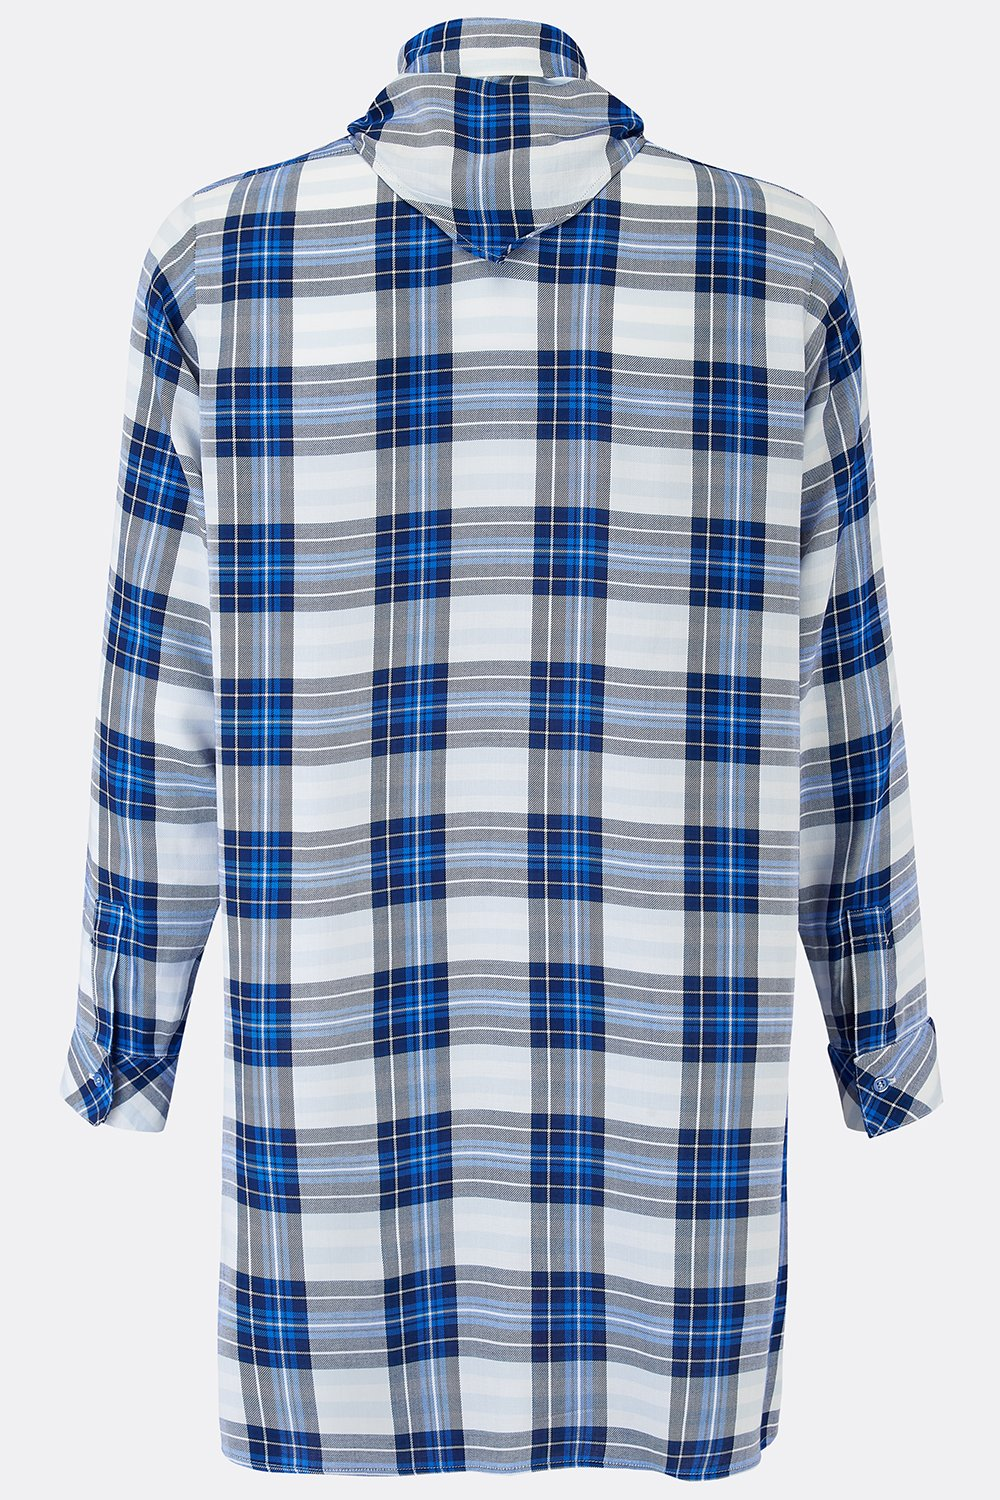 DRESS SHIRT IN BLUE CHECK-menswear-A Child Of The Jago